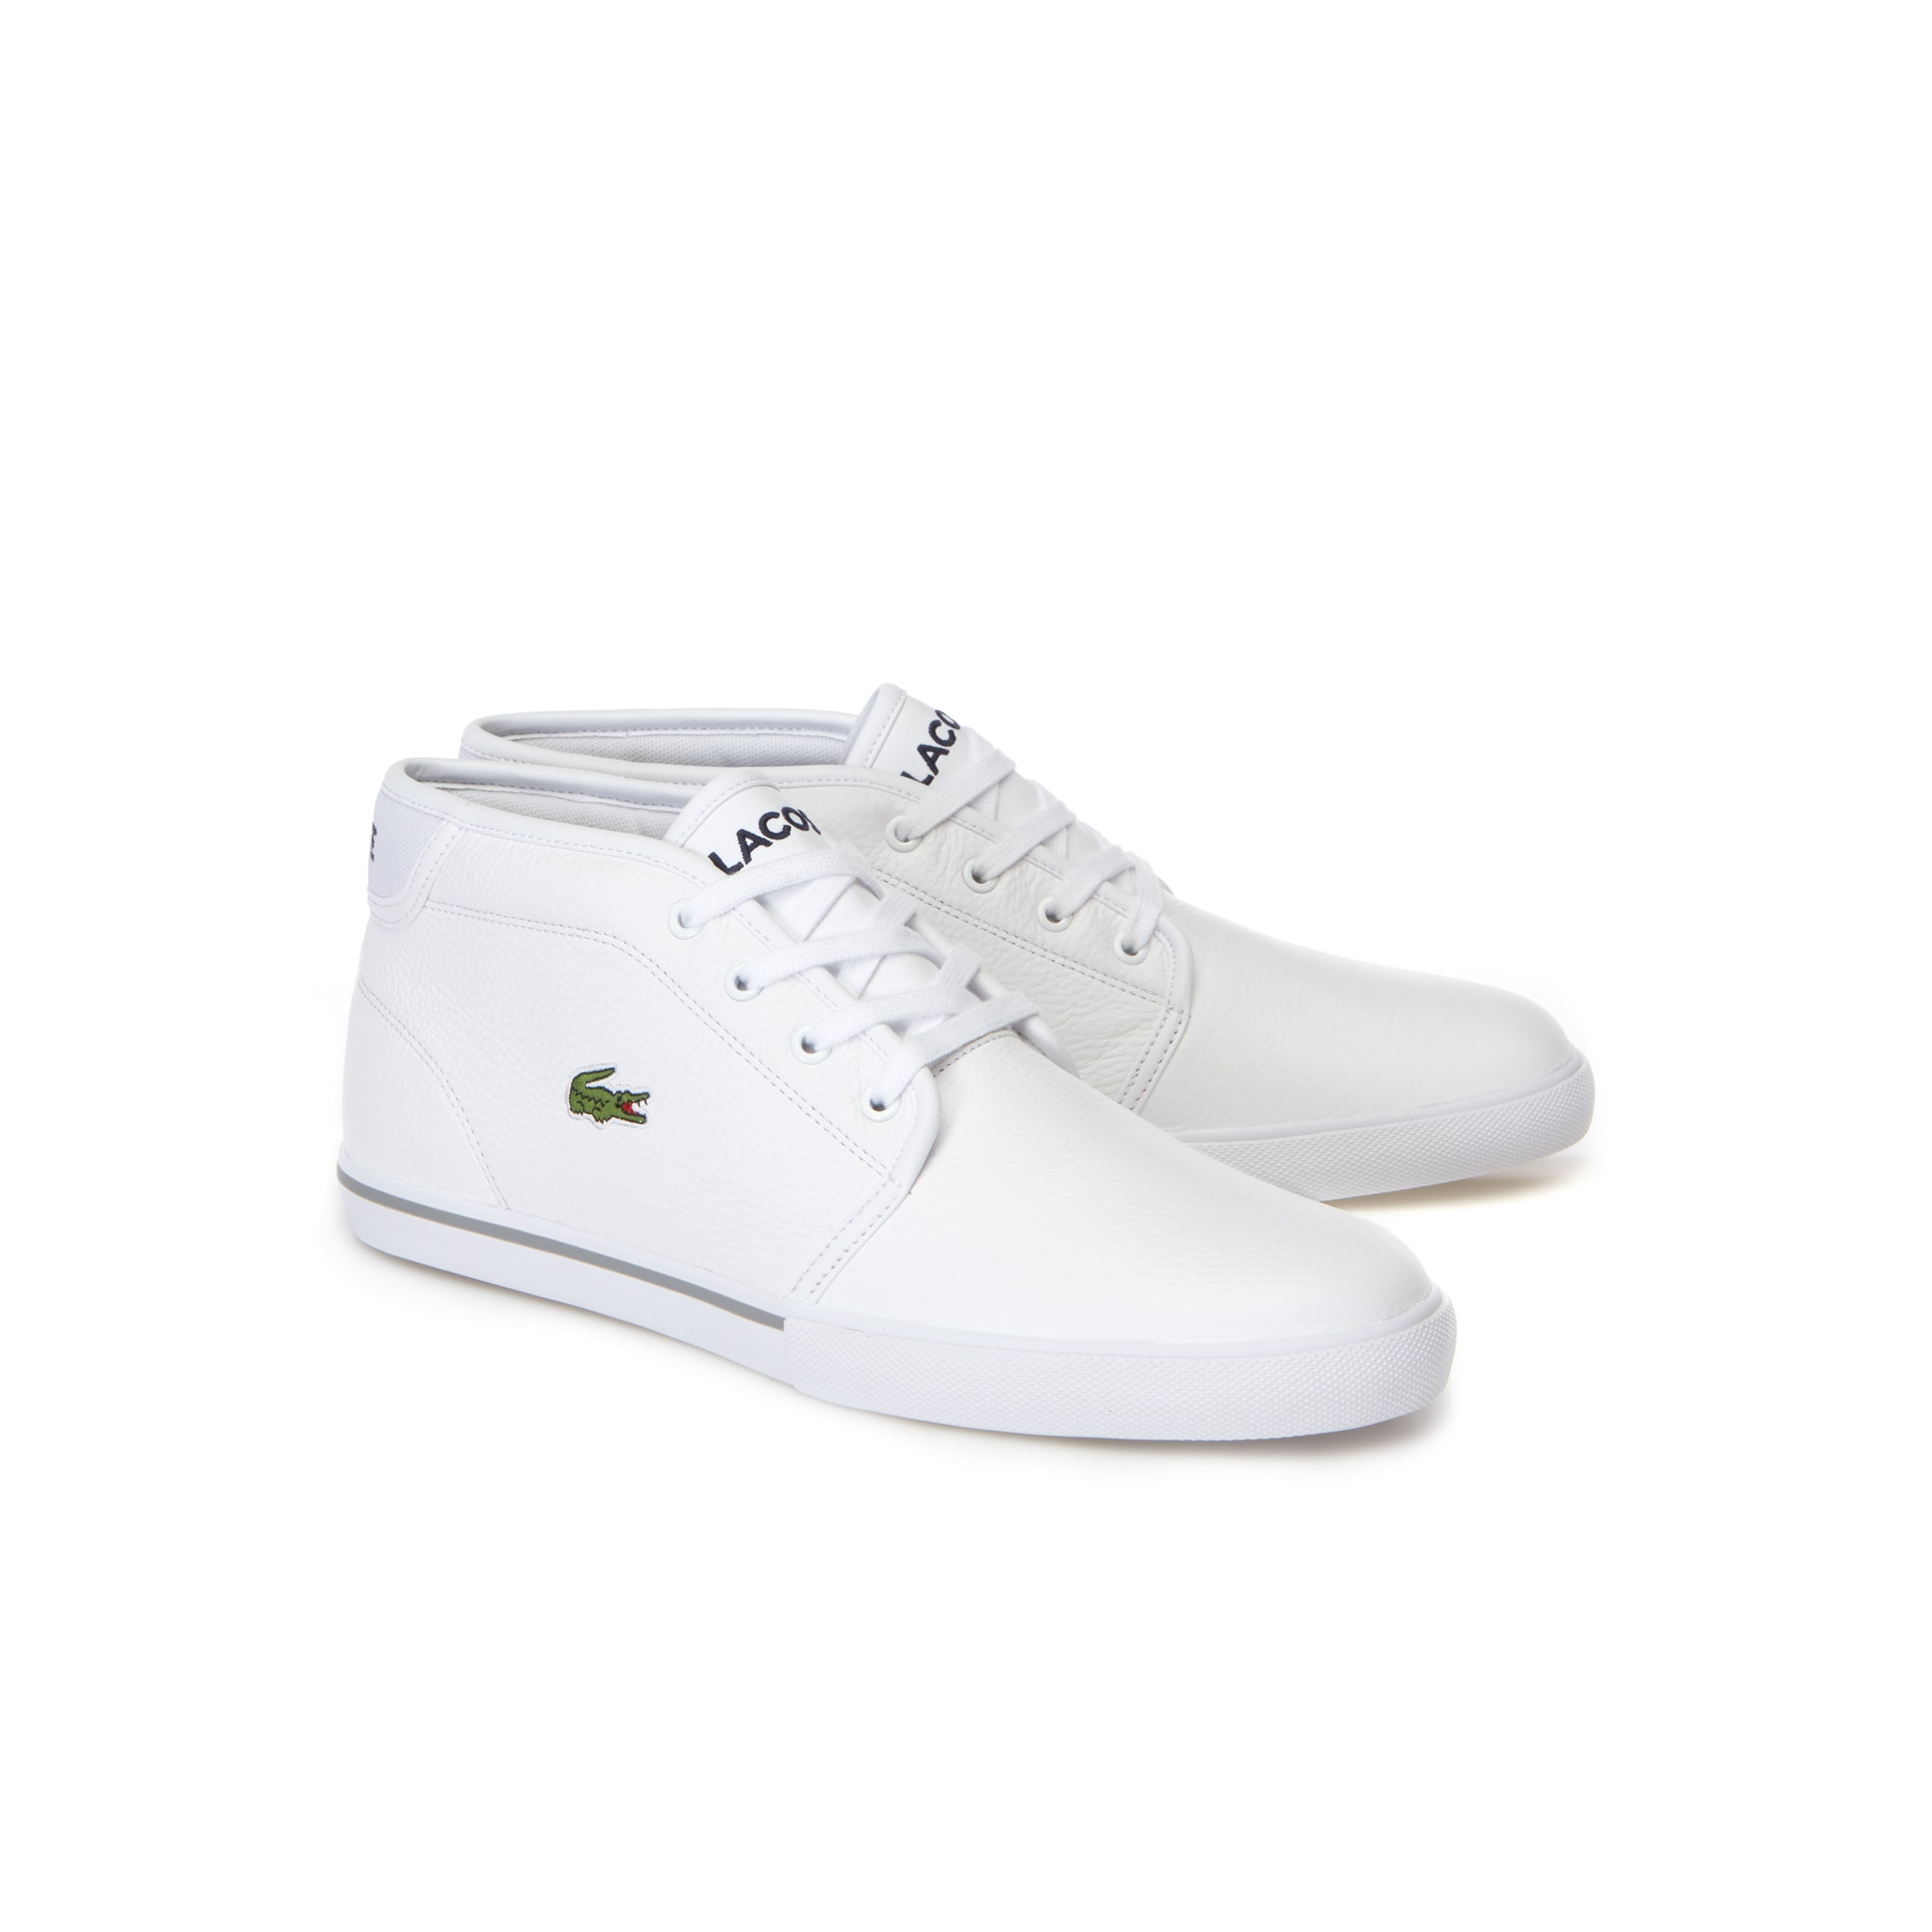 5cf504e4a3c3a0 Men s Ampthill Leather Mid Sneakers